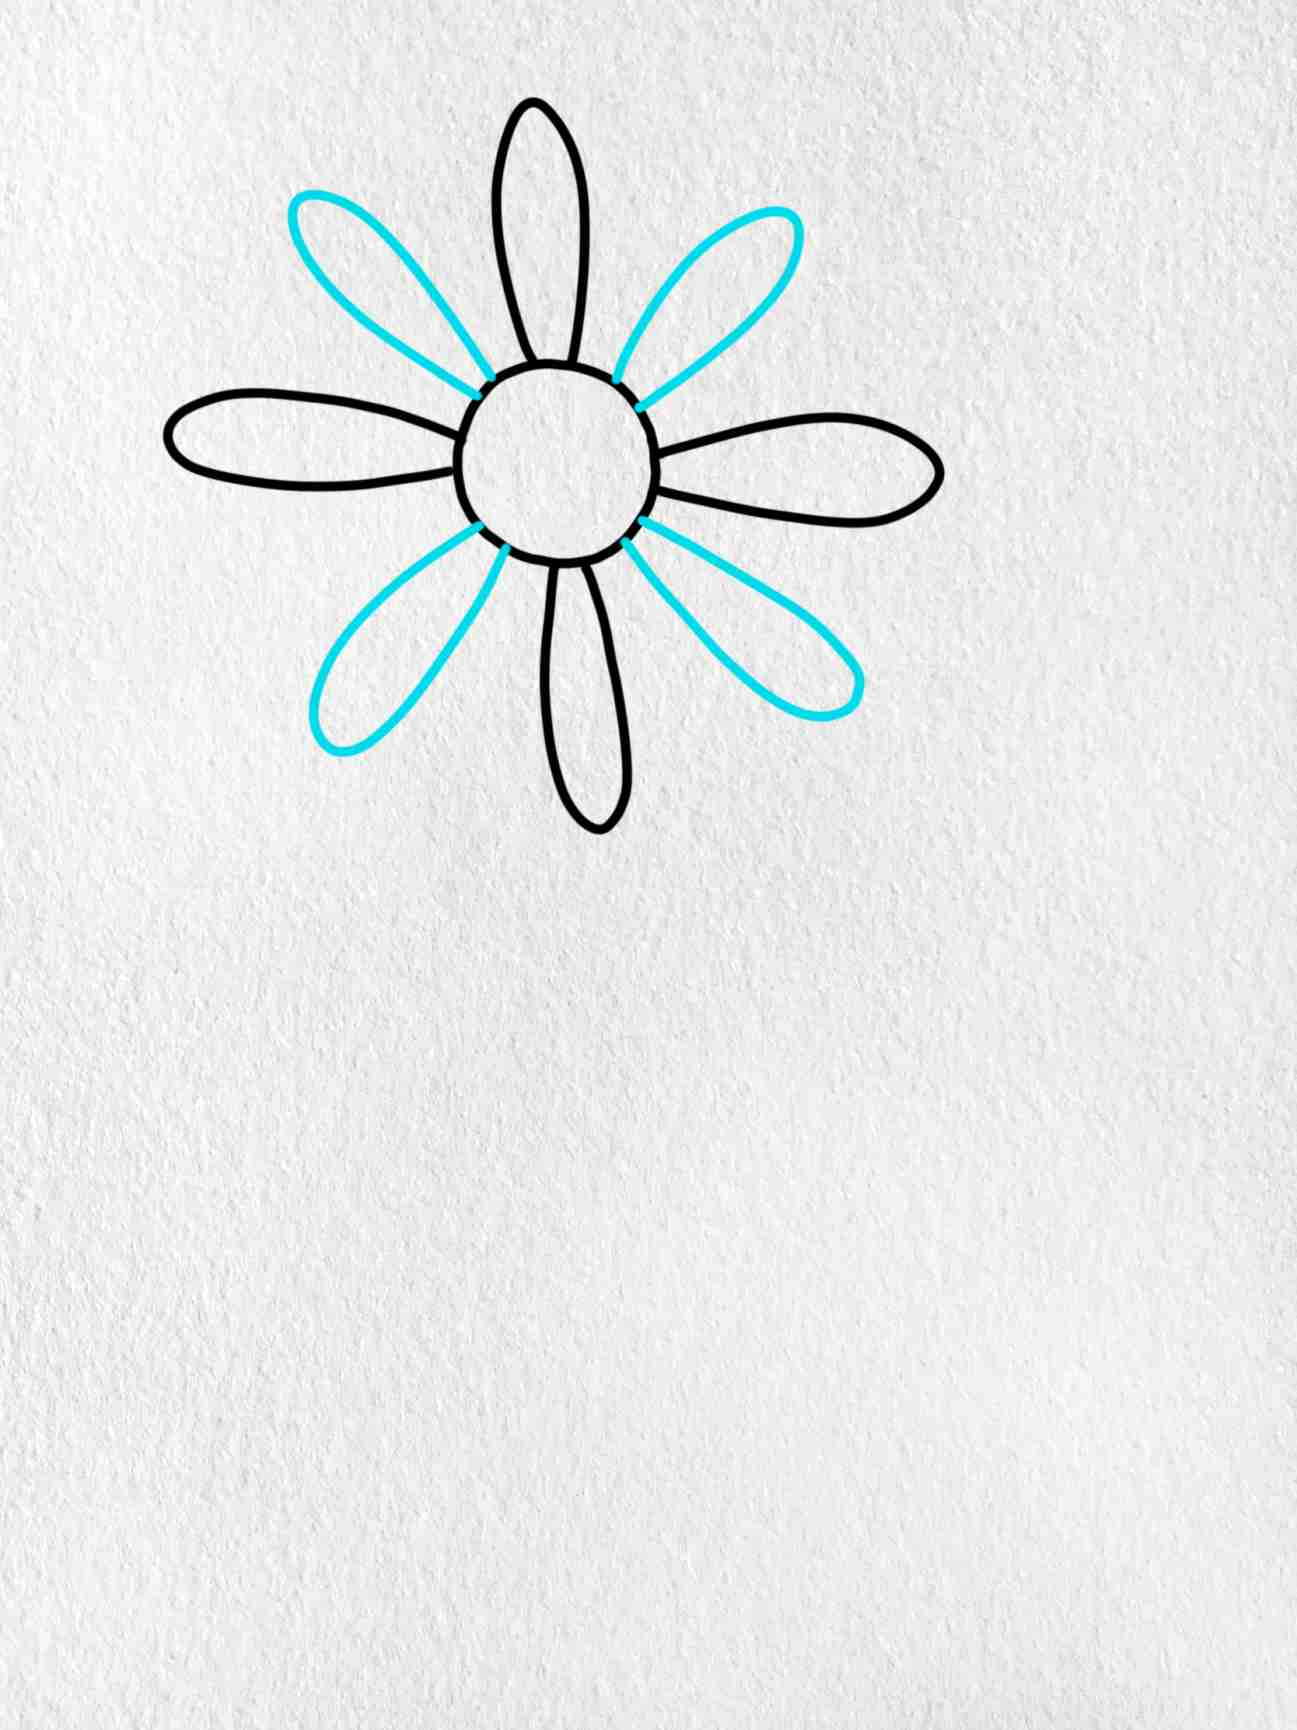 How To Draw A Daisy Flower: Step 2